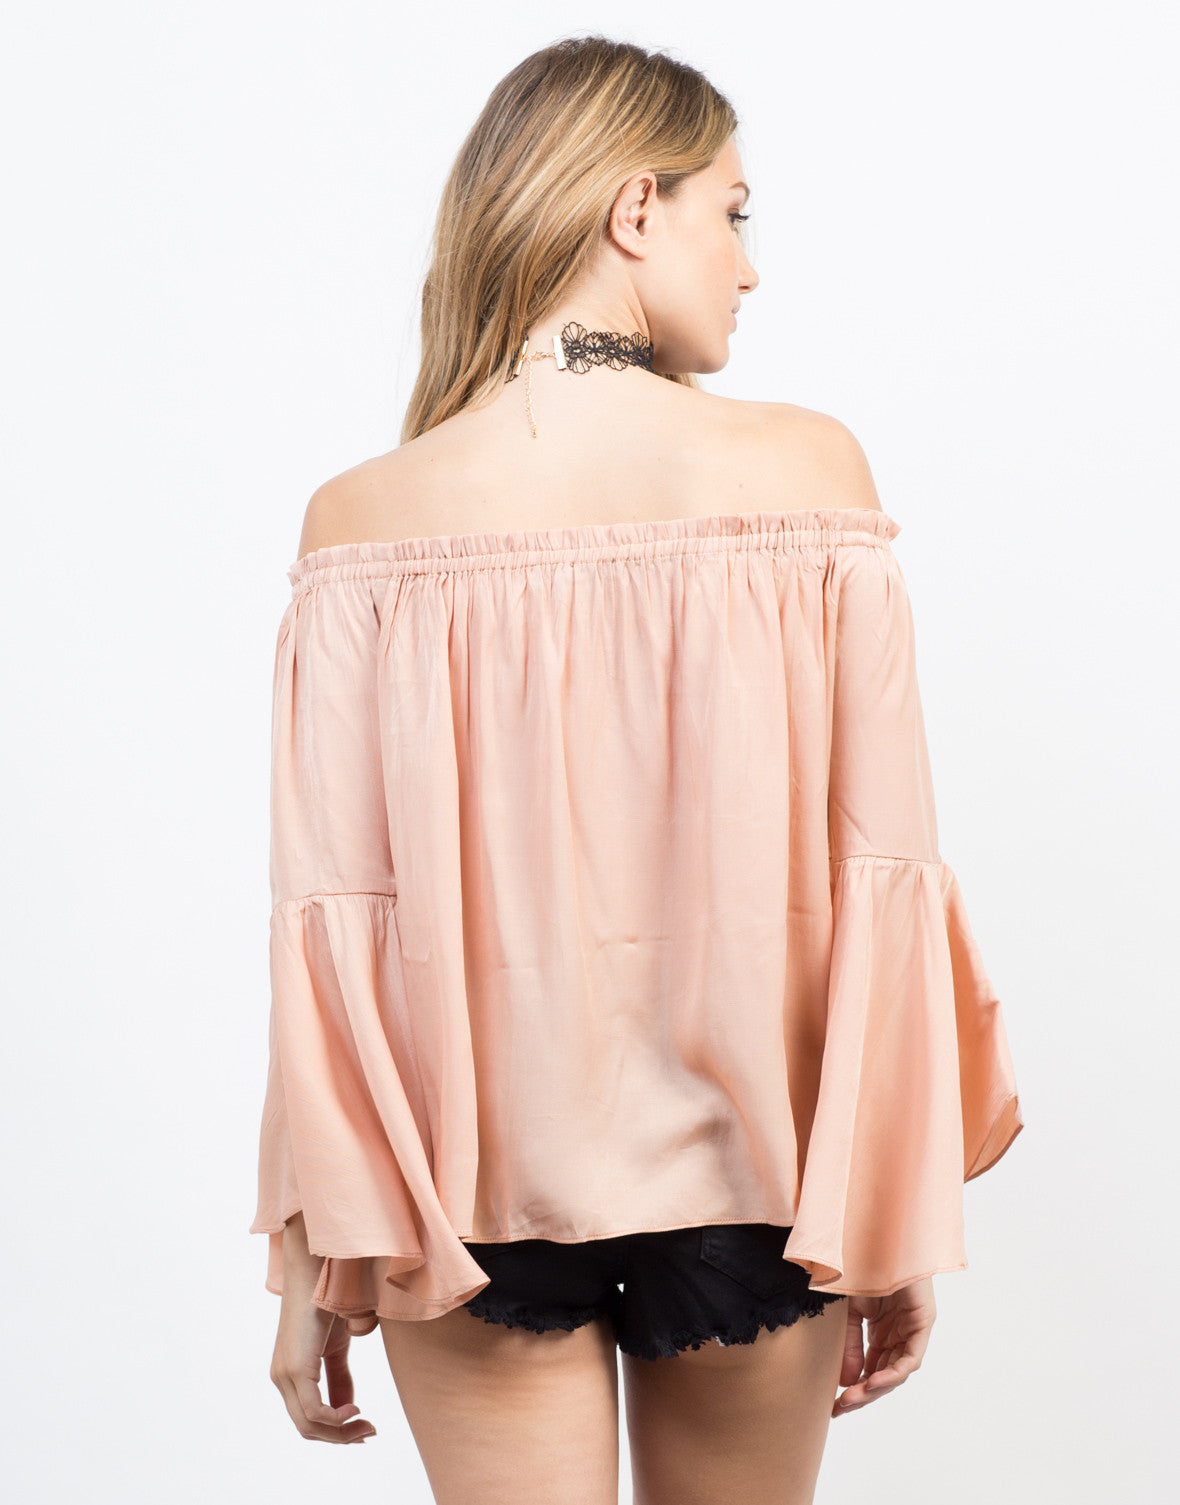 Back View of Flowy Bell Sleeved Top